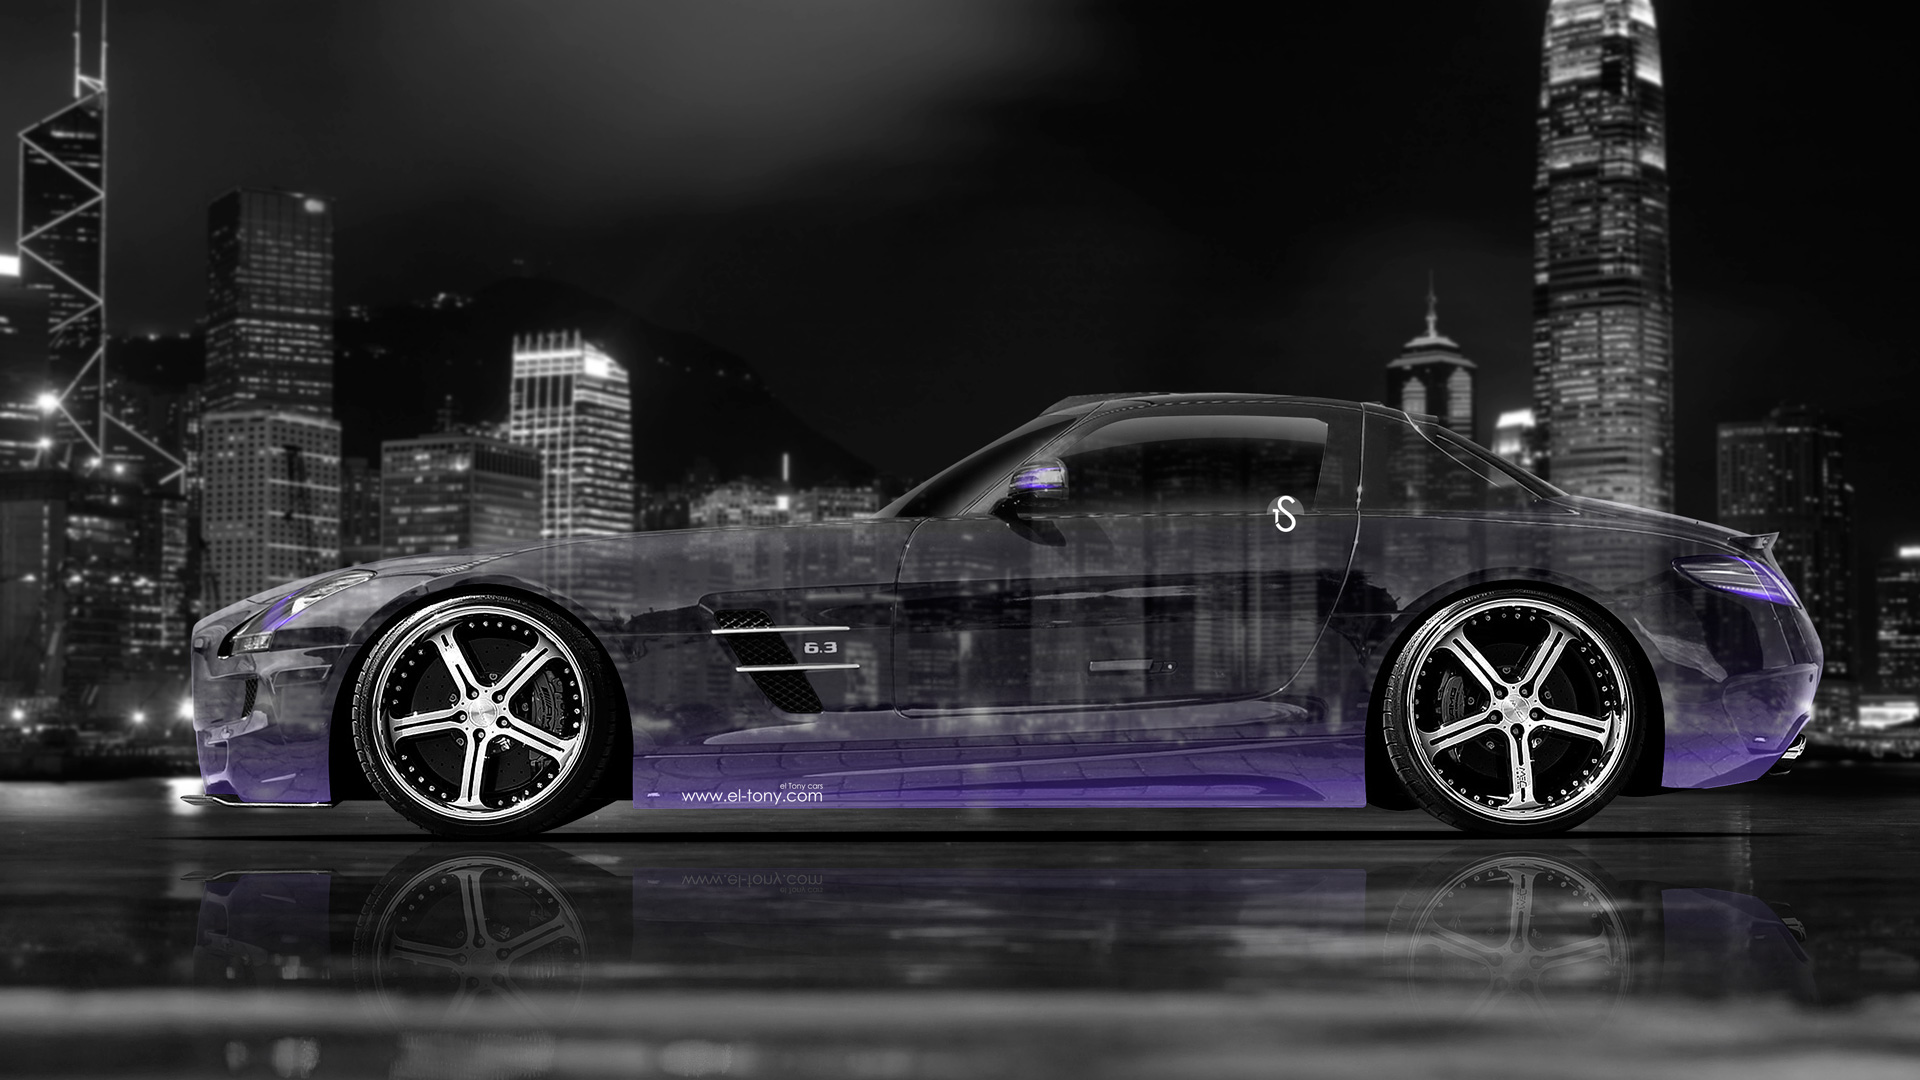 Mercedes SLS AMG Side Crystal City Car 2014